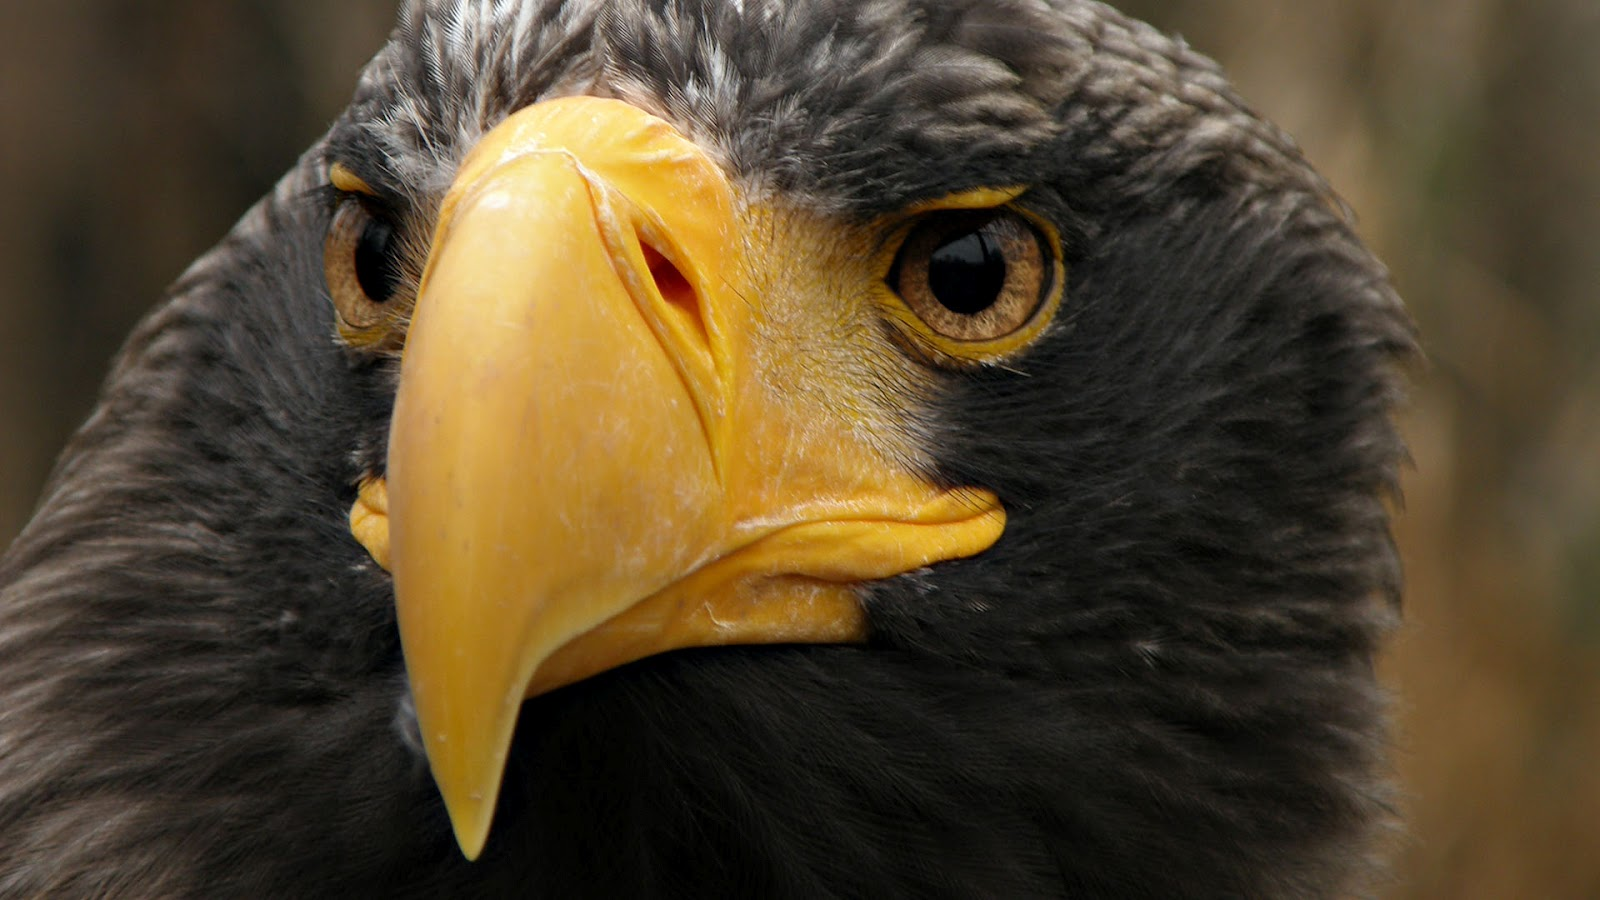 hd-eagle-wallpaper-with-a-portrait-of-a-eagle-hd-eagles-wallpapers.jpg